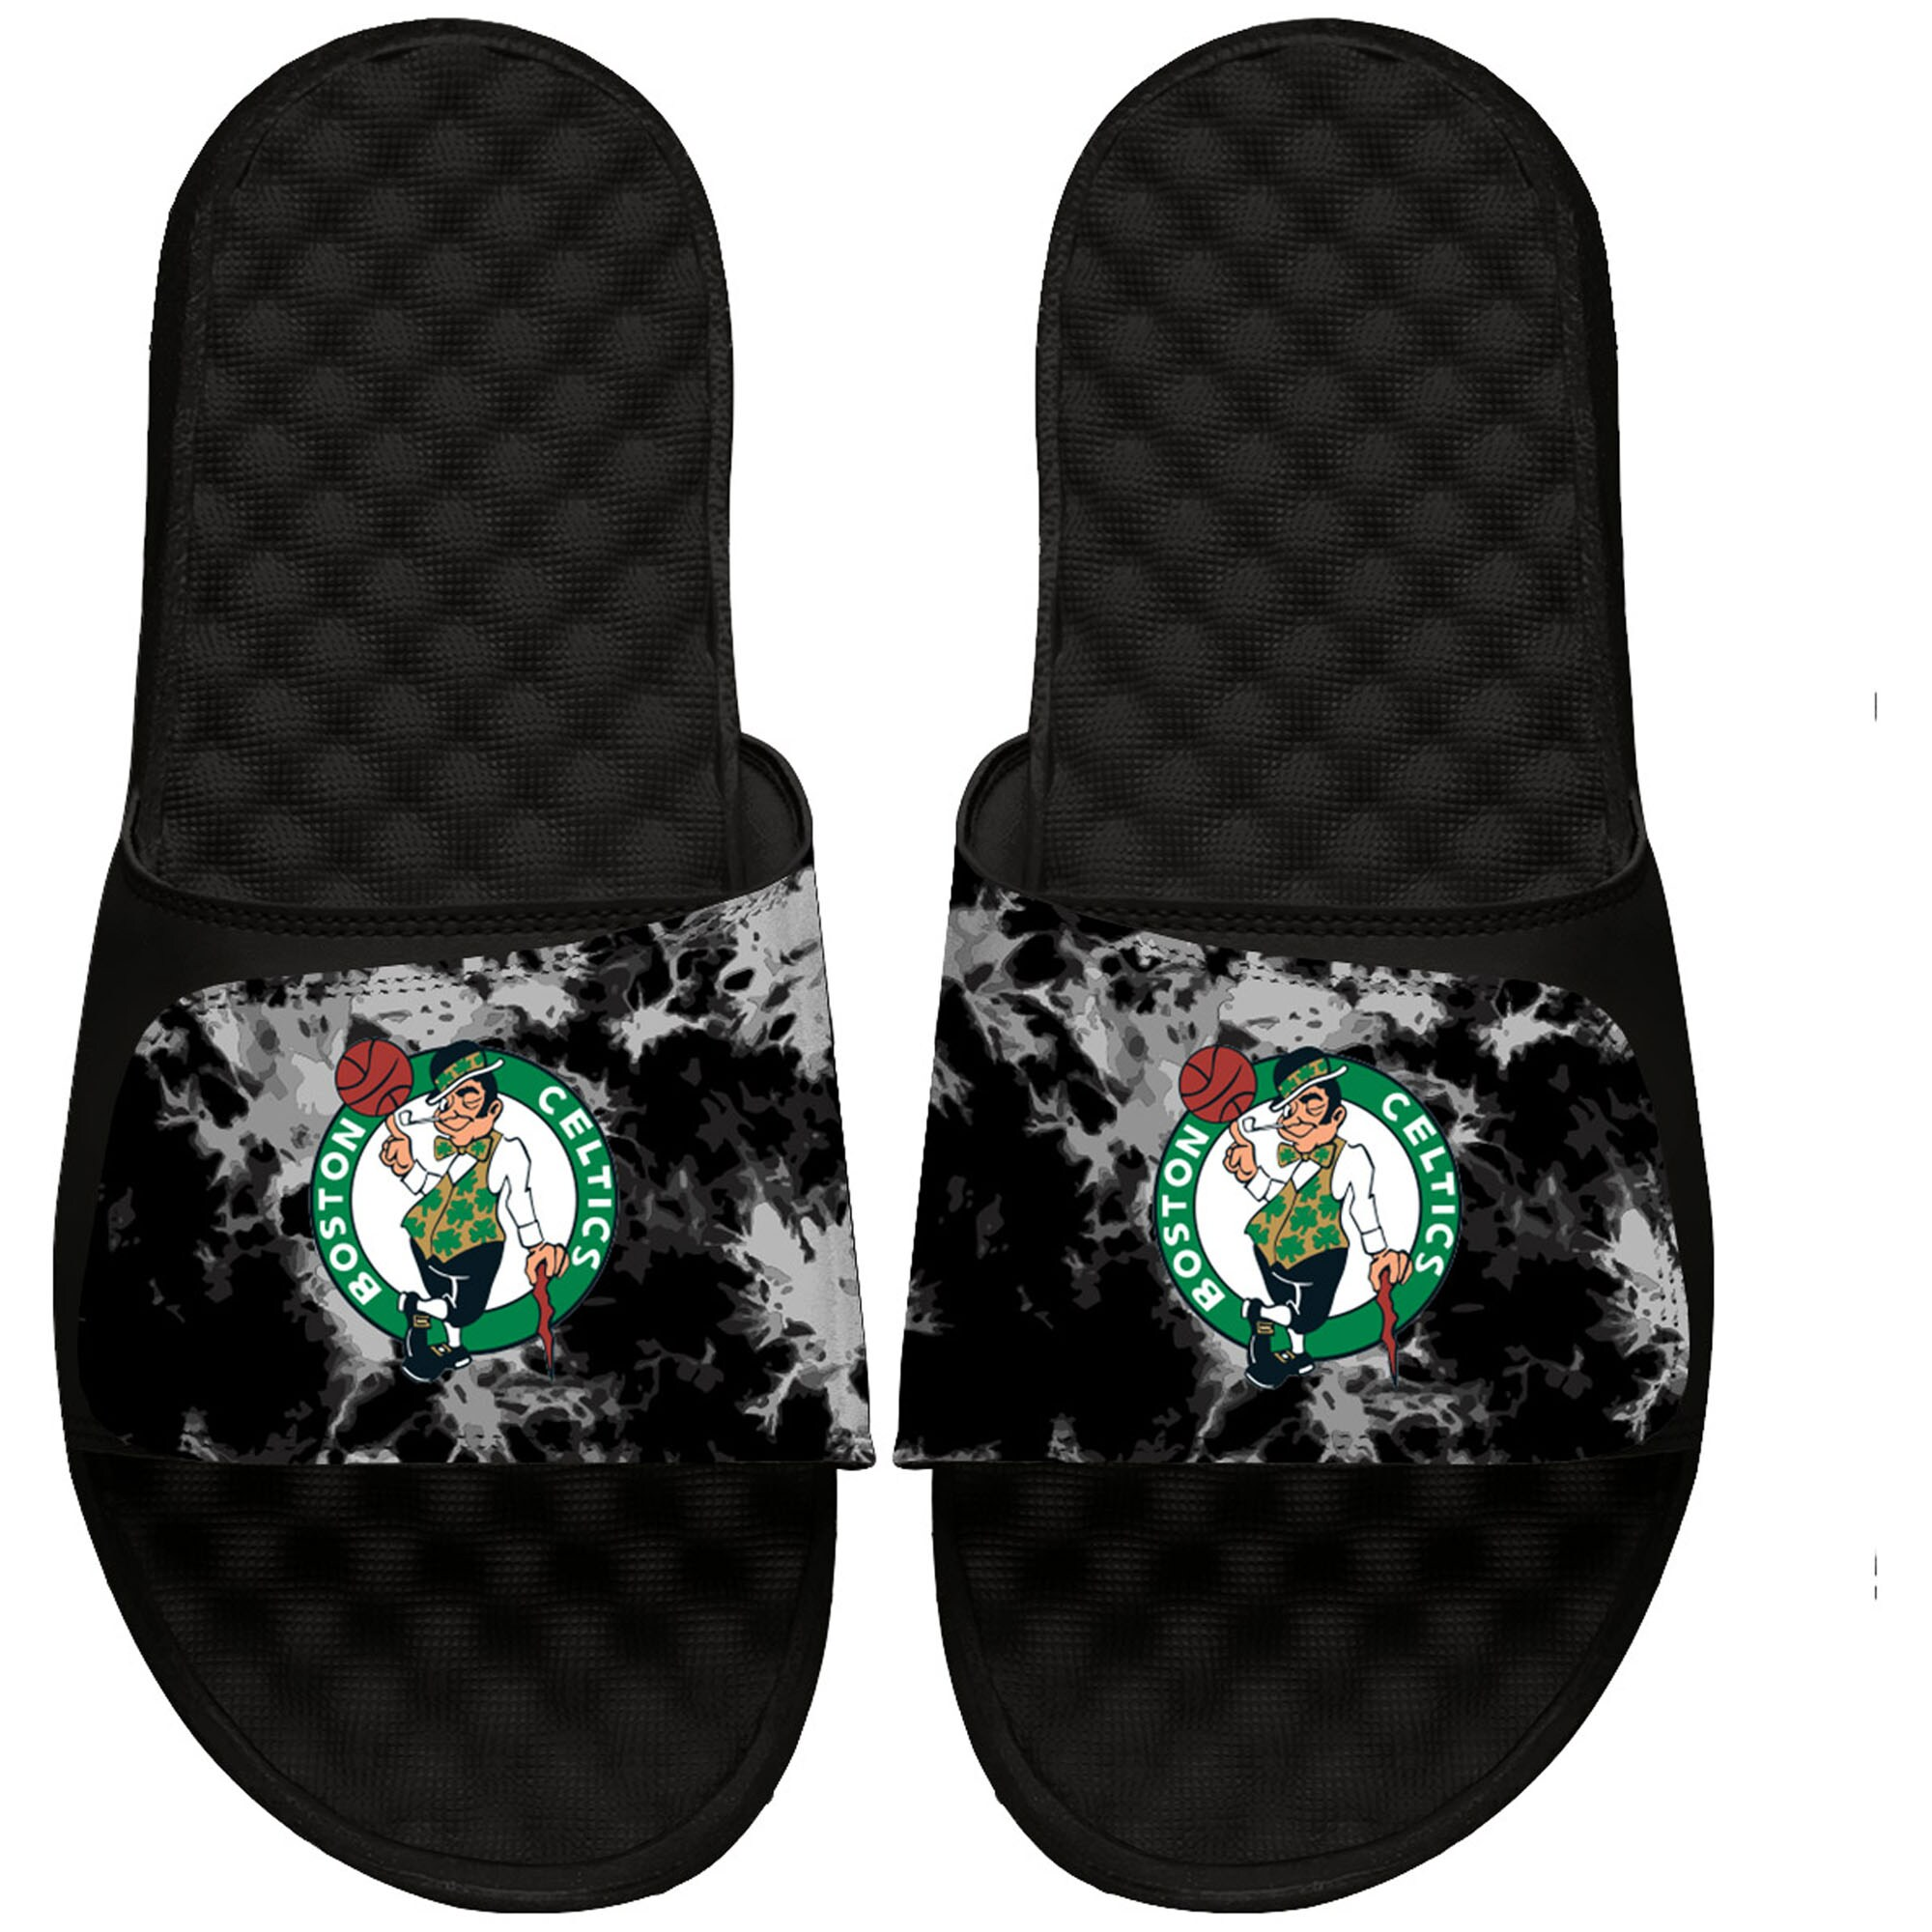 Boston Celtics ISlide Acid Wash Slide Sandals - Black